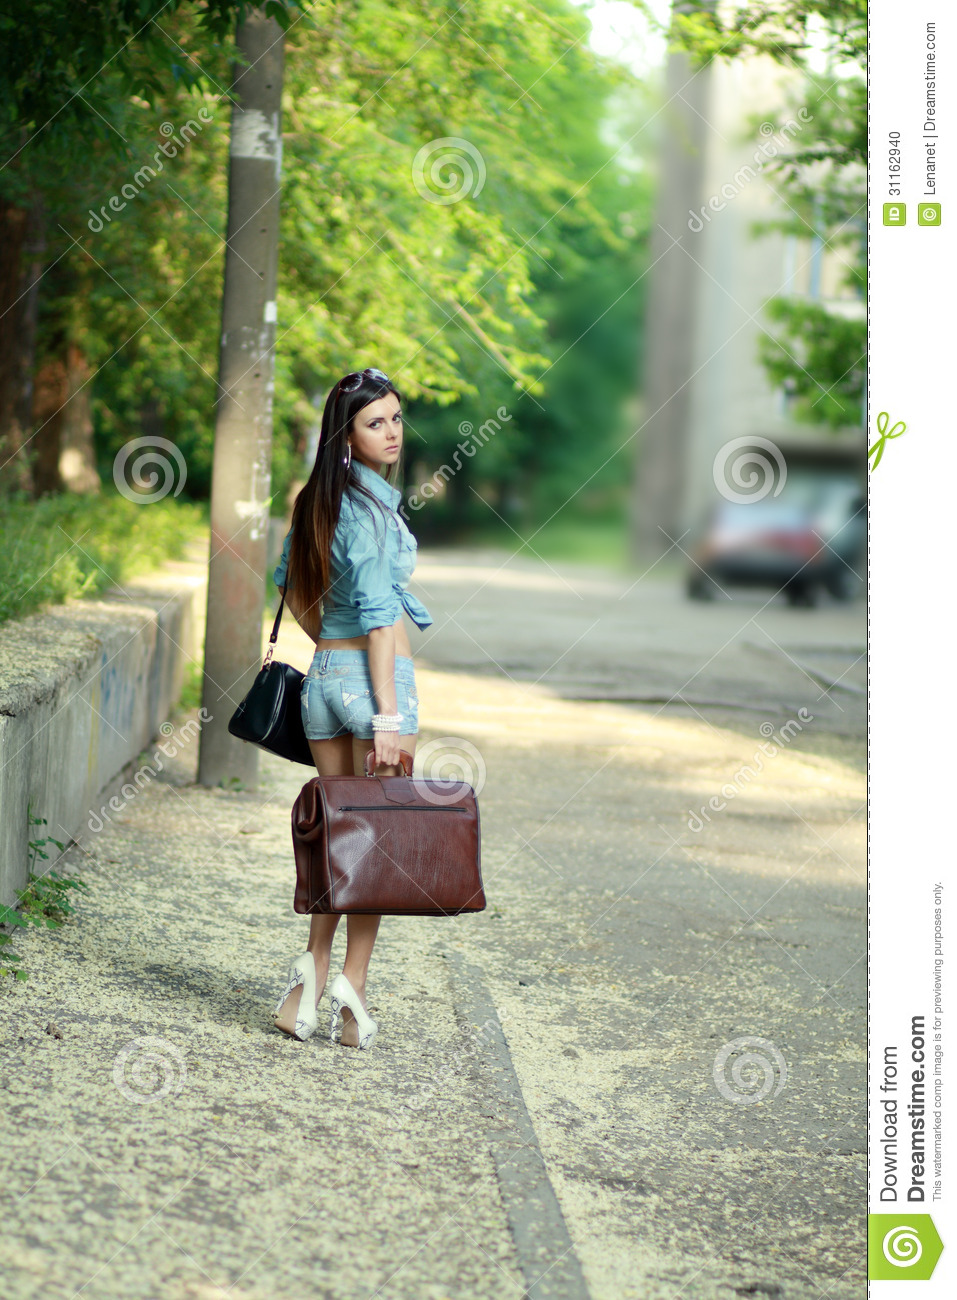 Woman walking away stock photo. Image of classic, clothes ...